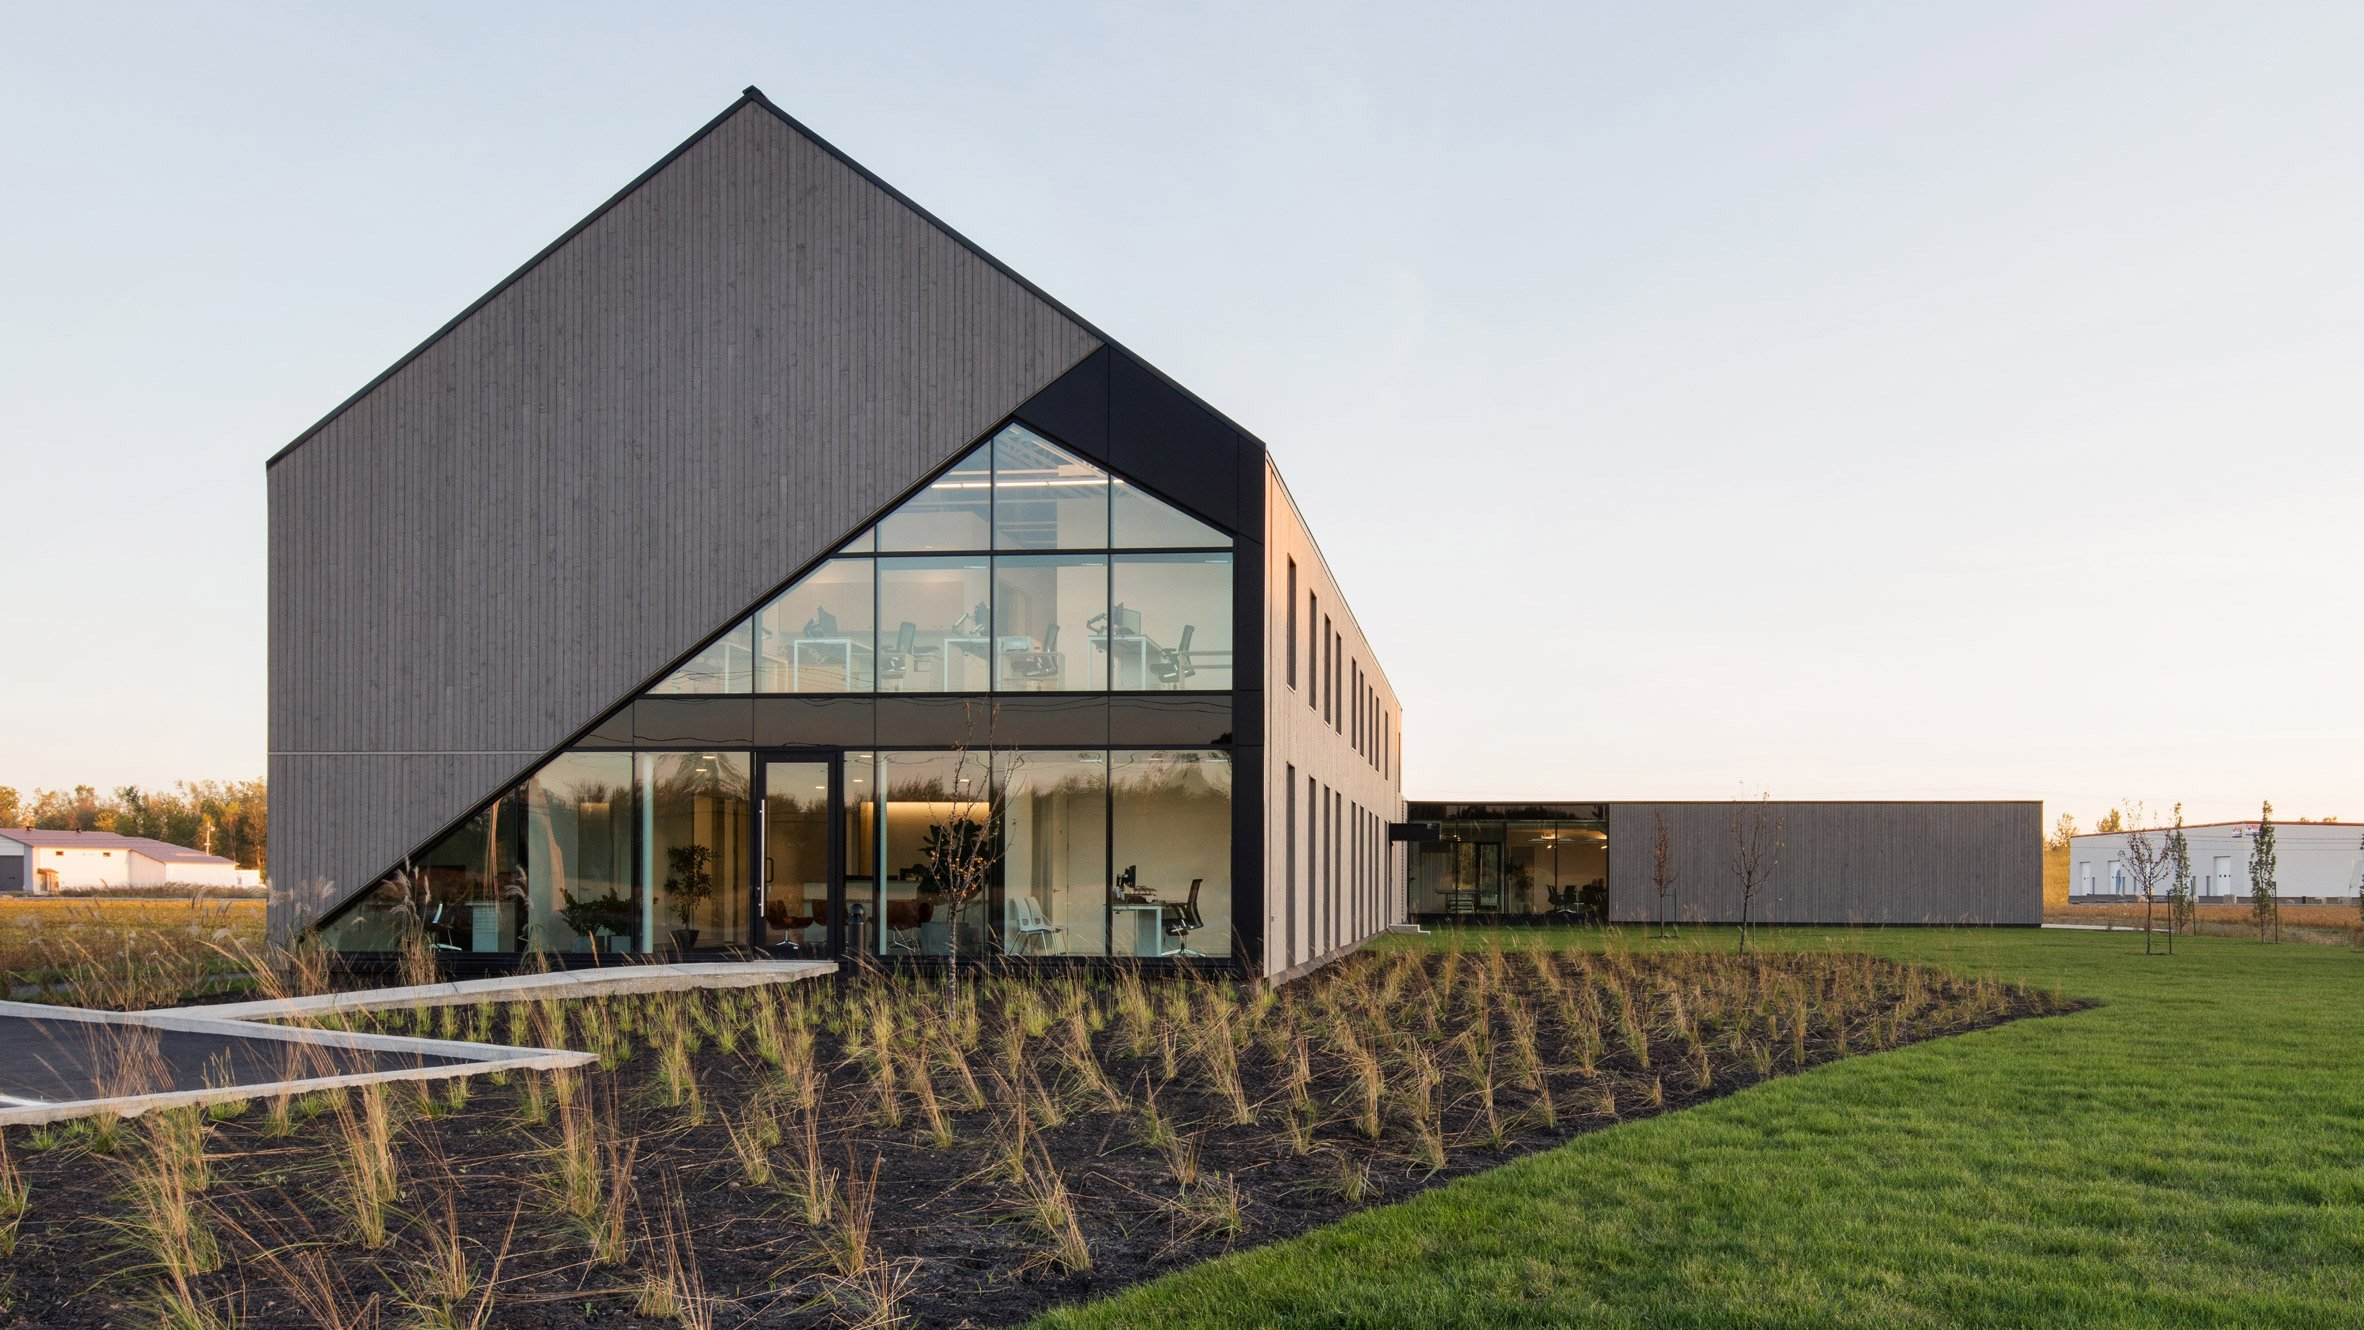 Maurice Martel disguises office building as contemporary barn in rural Canada